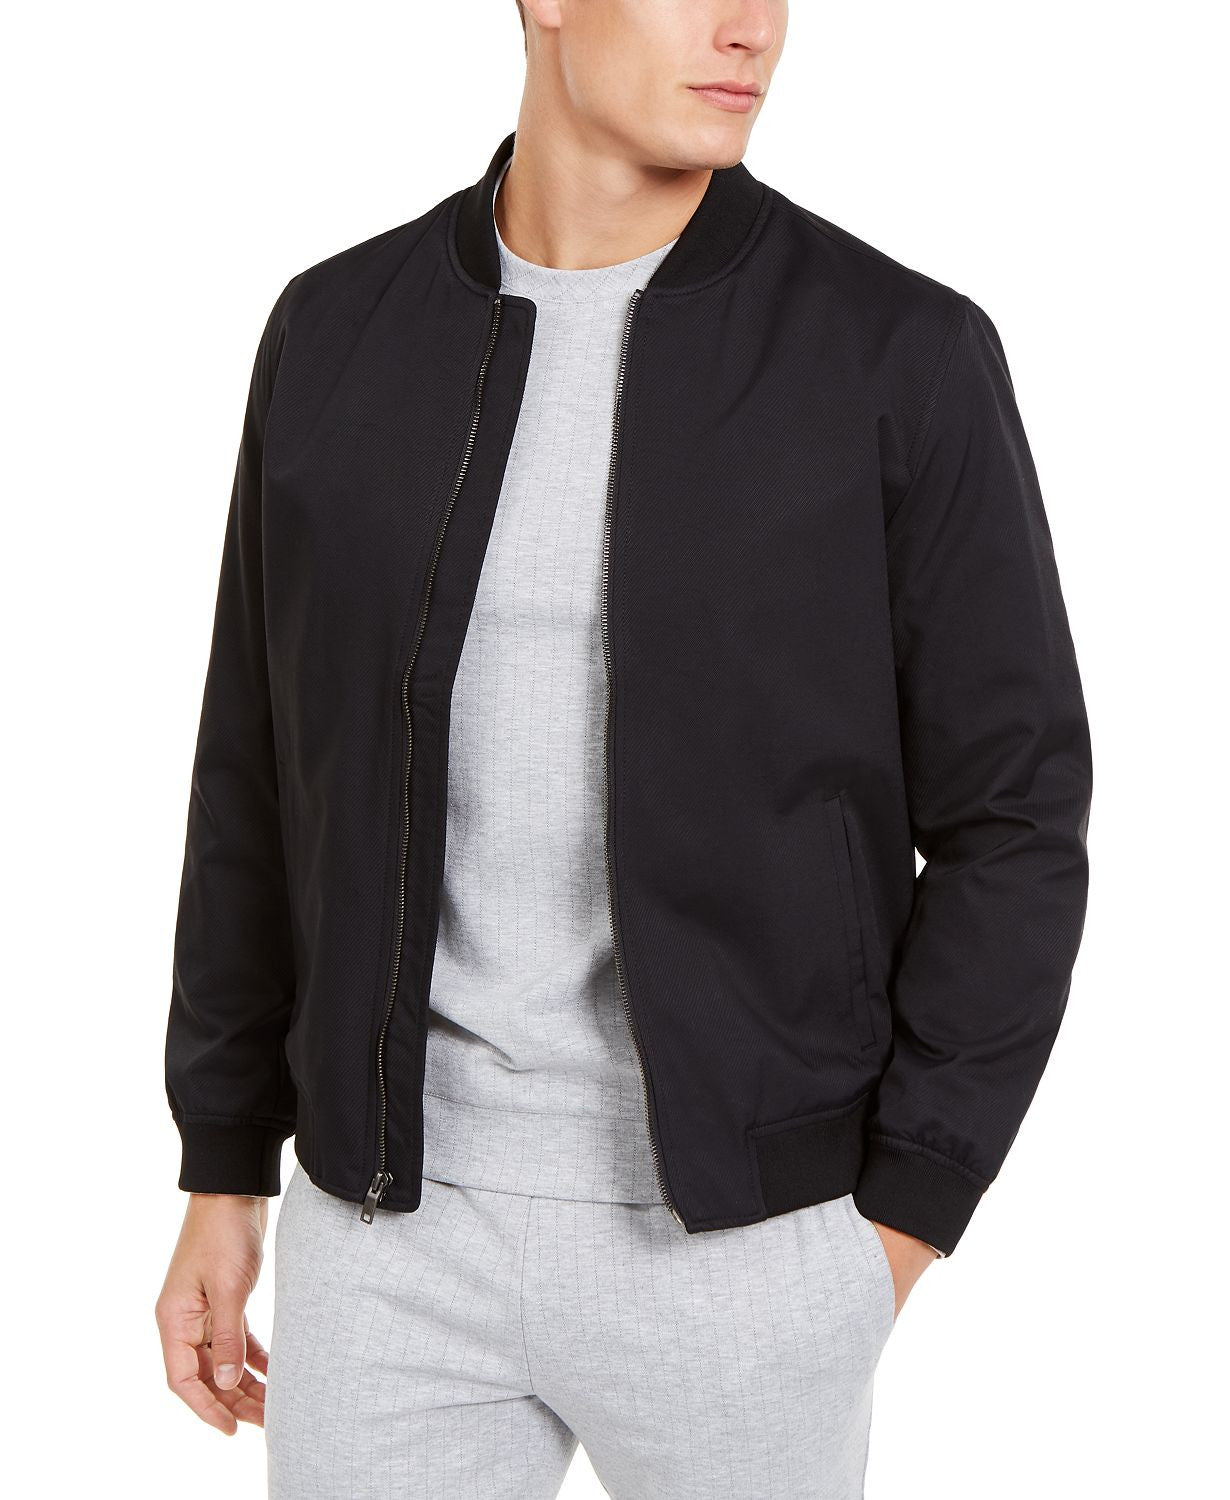 Alfani Full-zip Bomber Jacket Deep Black